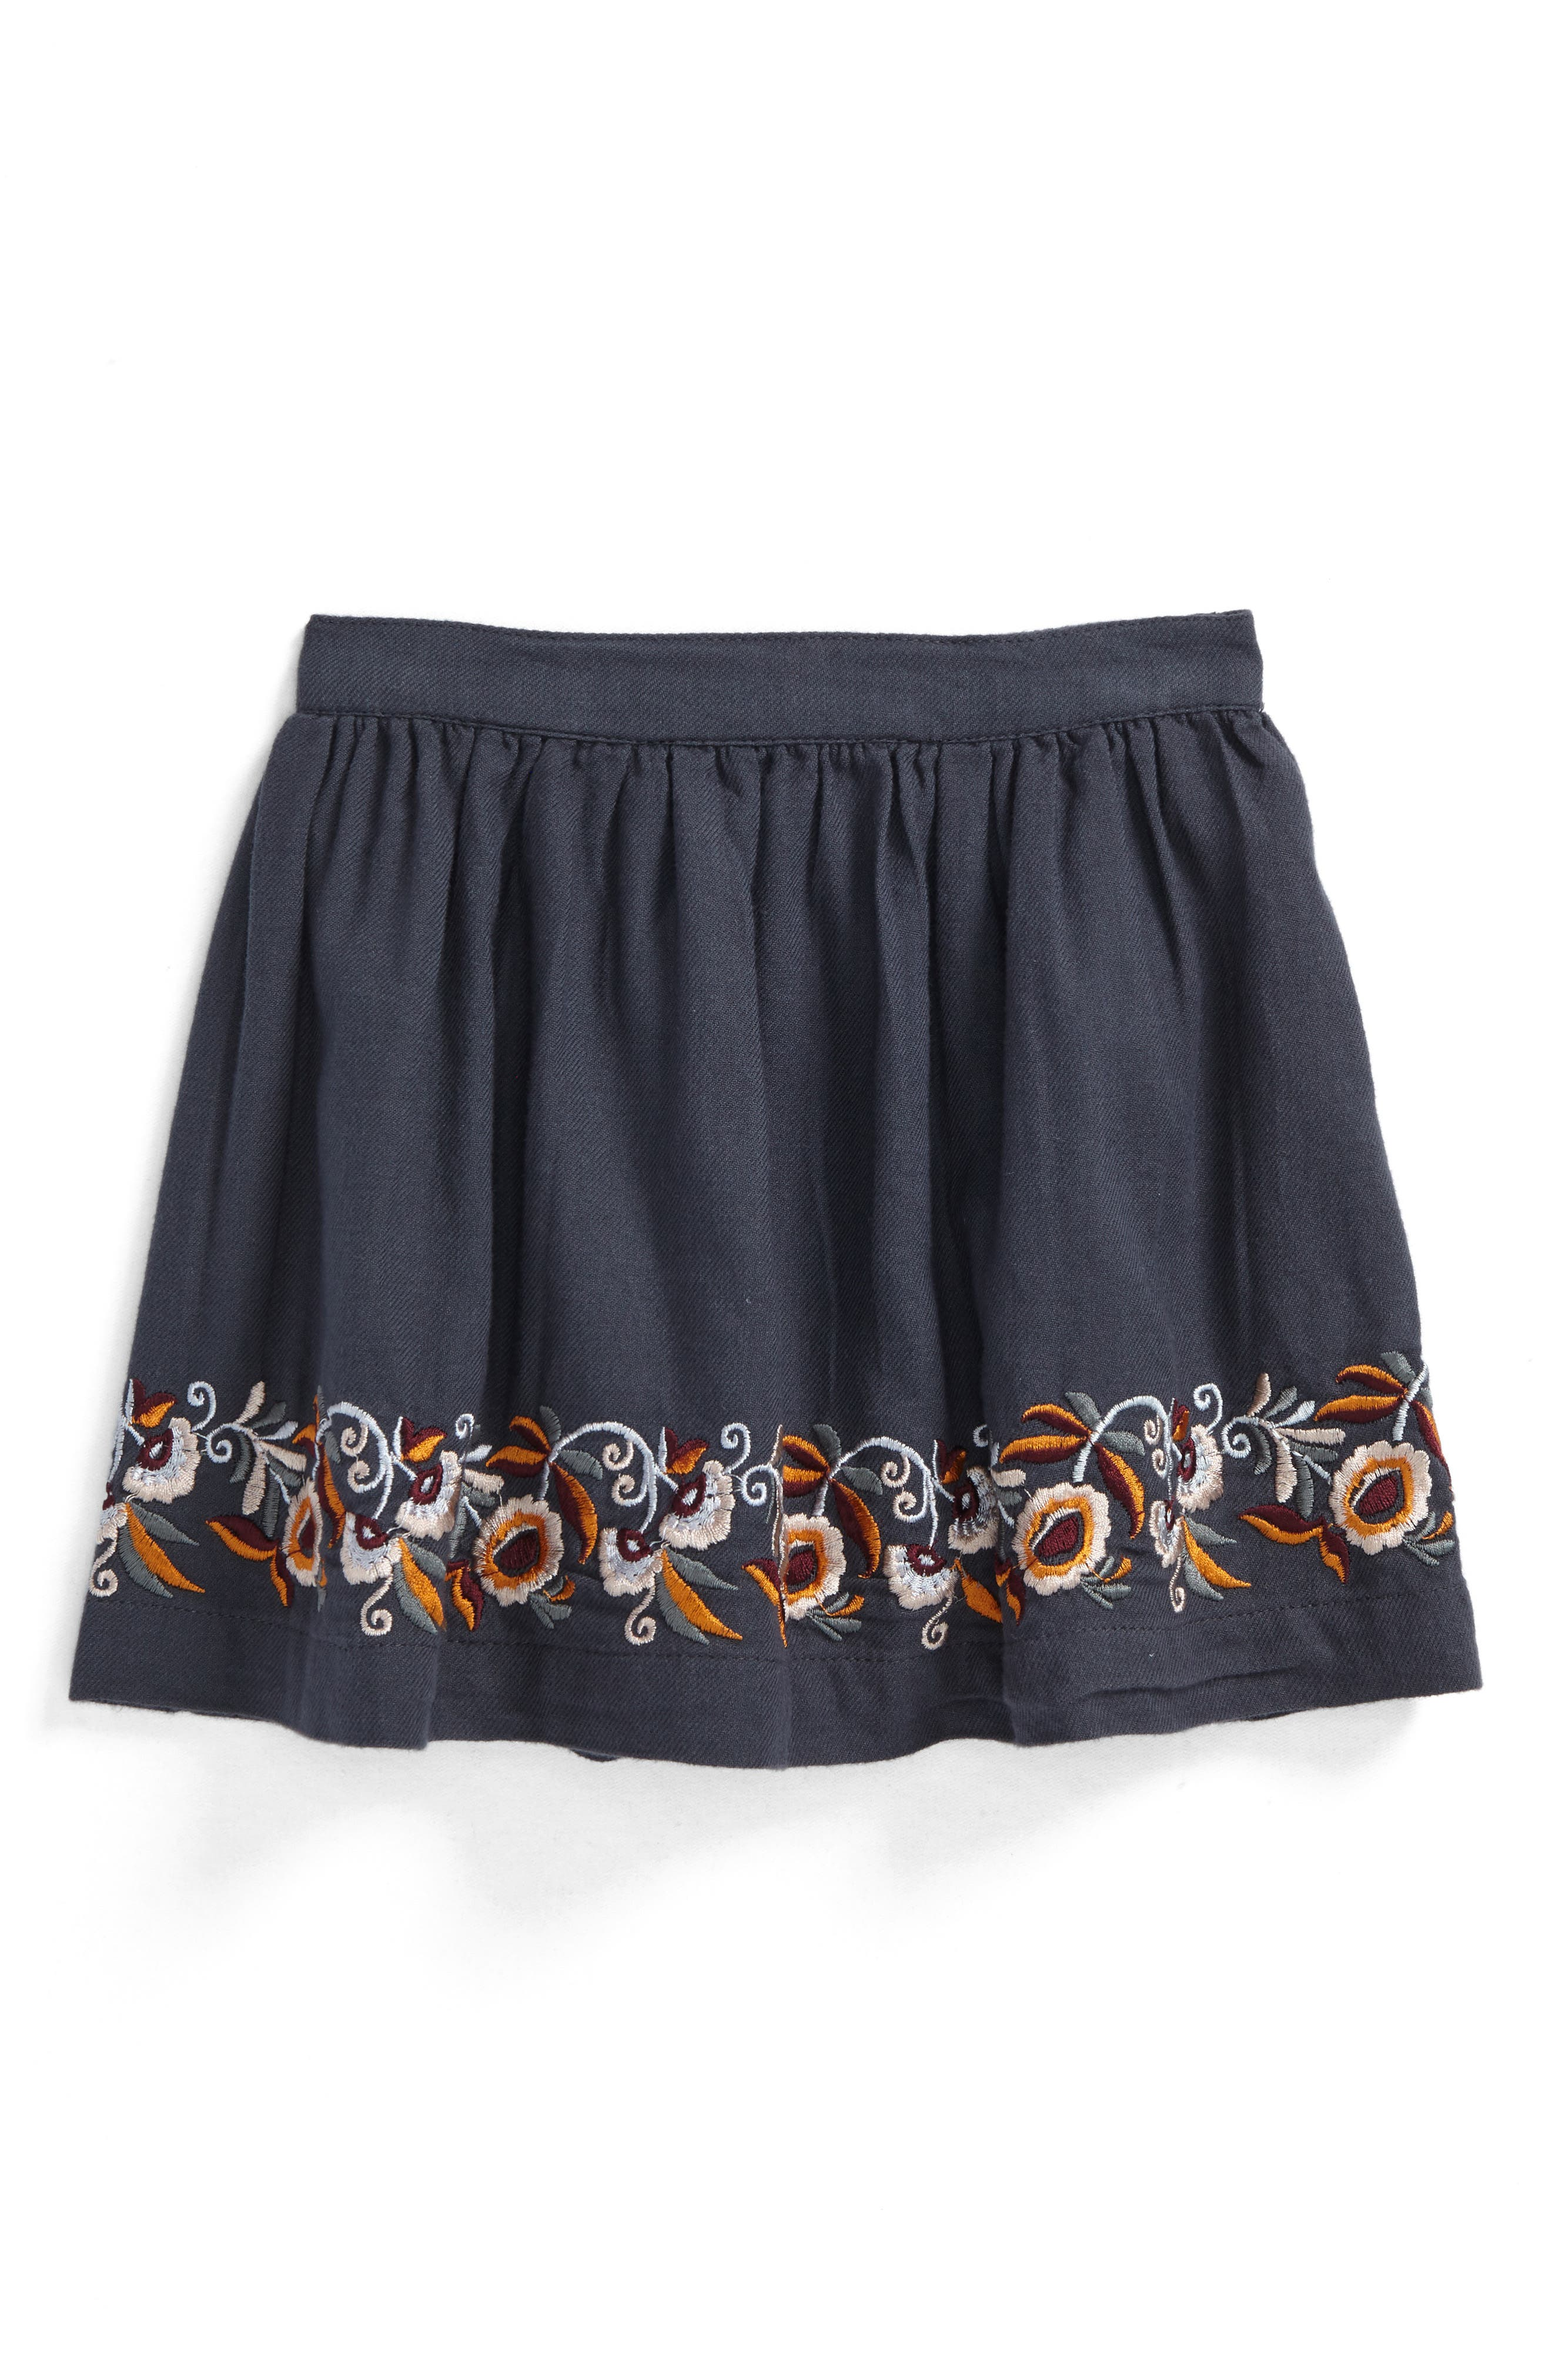 Claire Embroidered Skirt,                         Main,                         color, 021